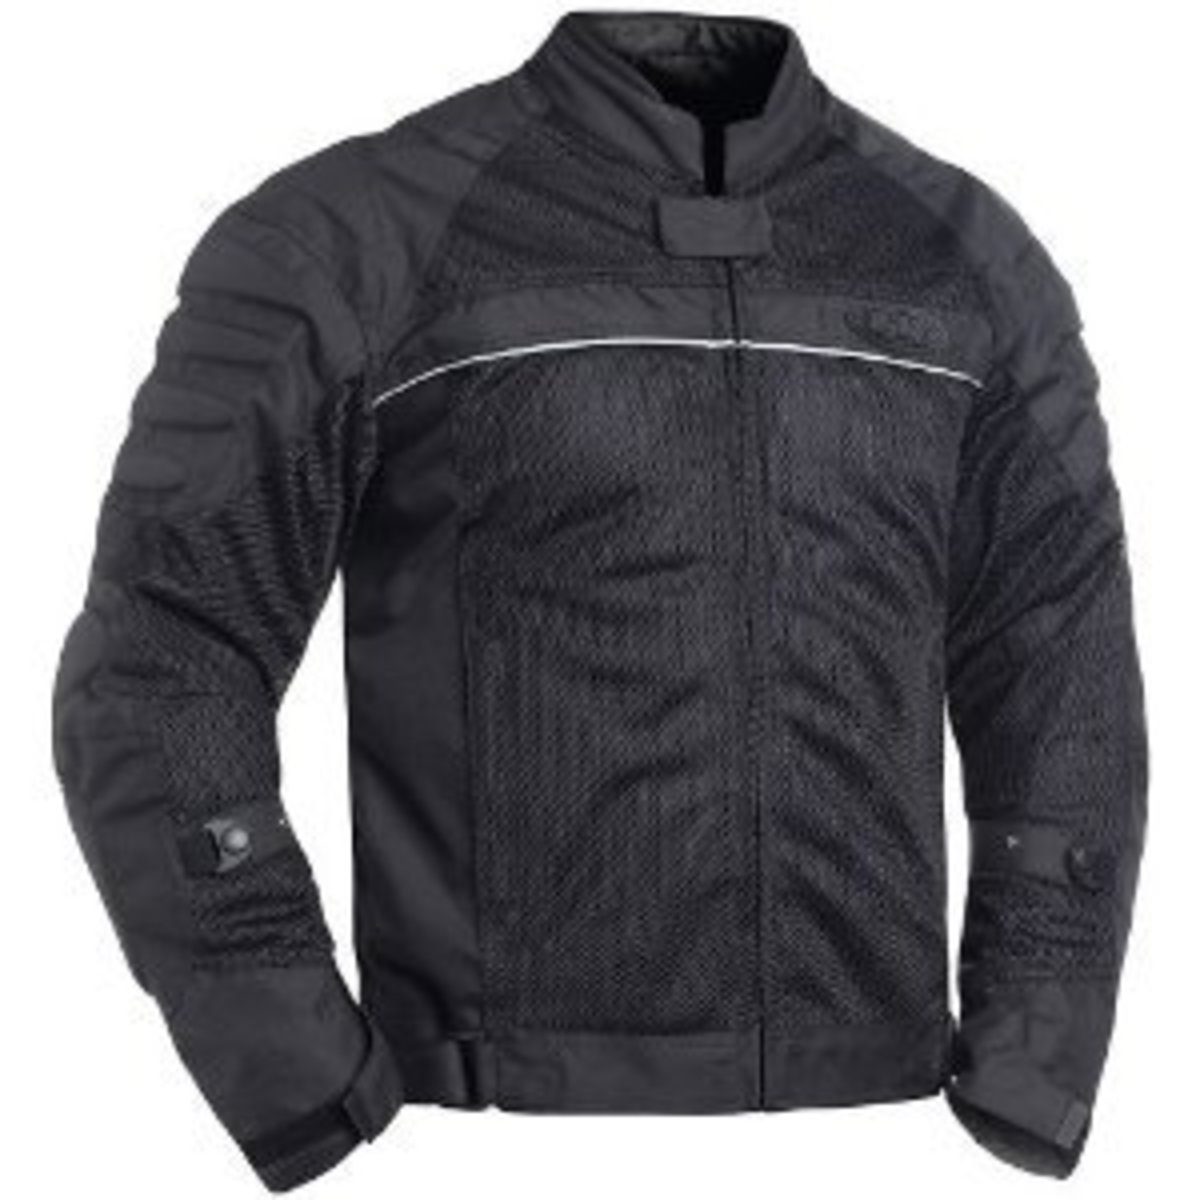 BILT Blaze Mesh motorcycle jacket in black